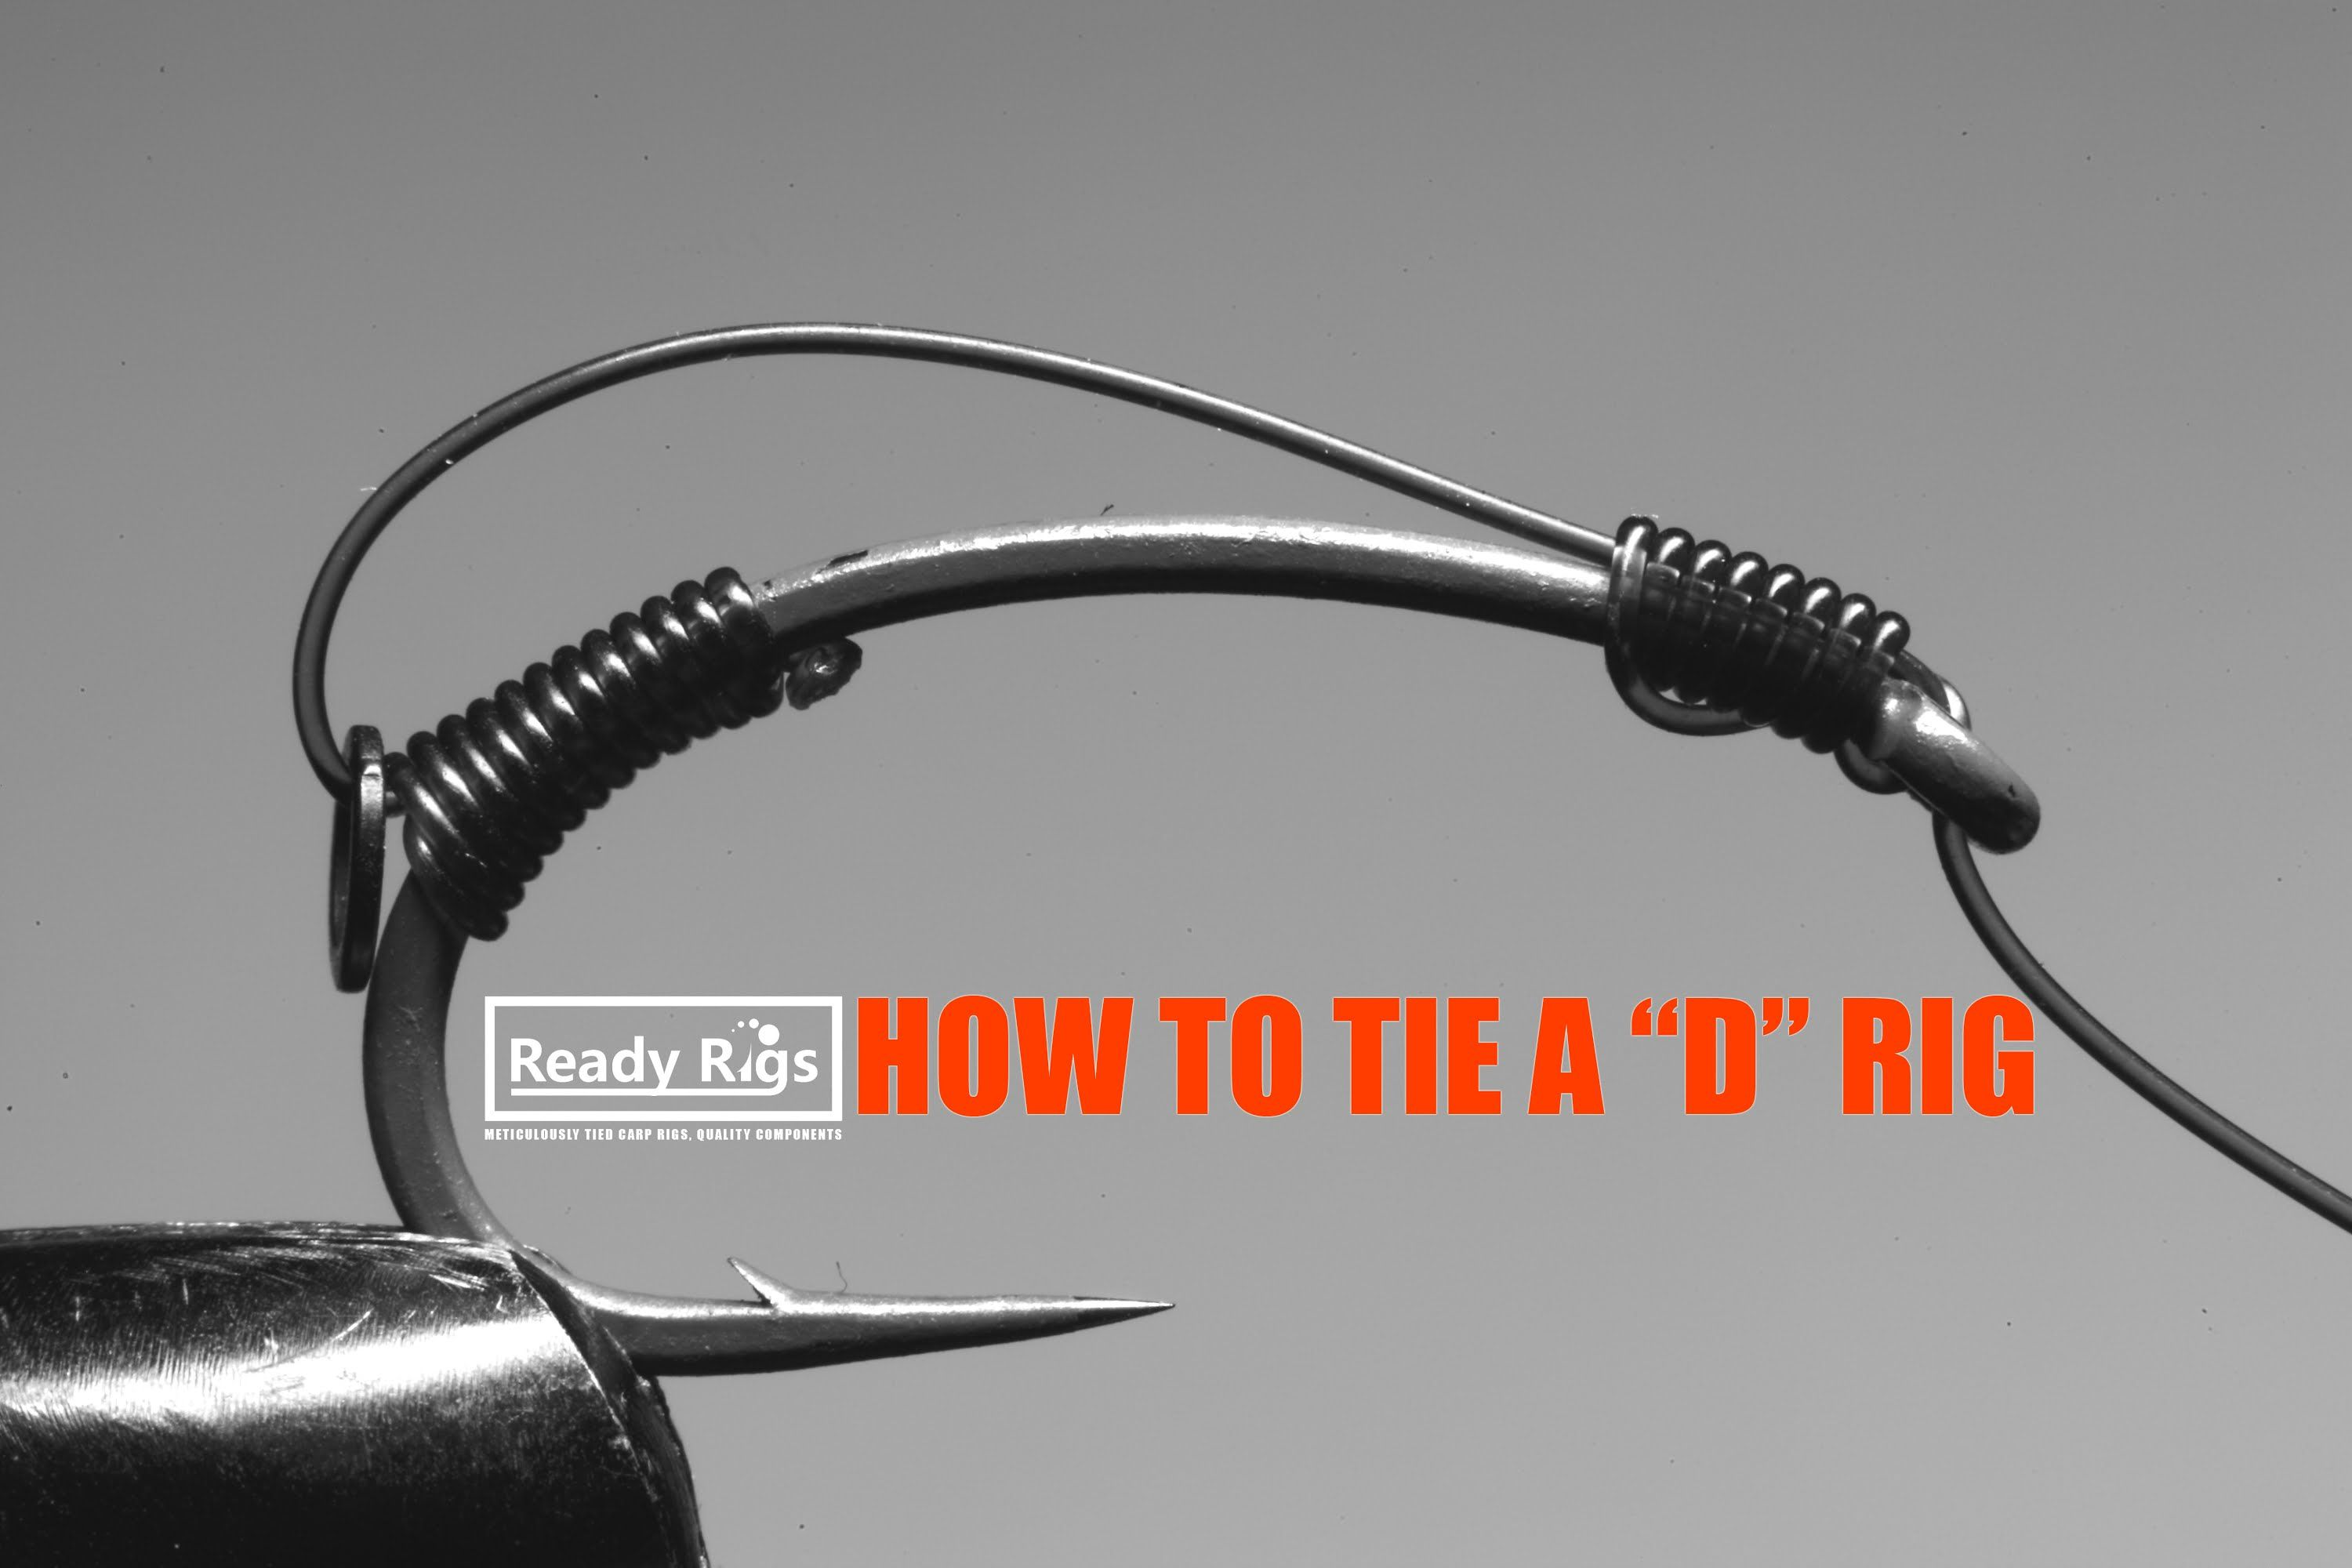 Knot Tying Diagrams Http Wwwfintalkcom Fishingknots Nailknot How To Tie The D Rig Demonstration Showing One Way Of Popular Used In Carp Fishing Popularised Korda Underwater 7